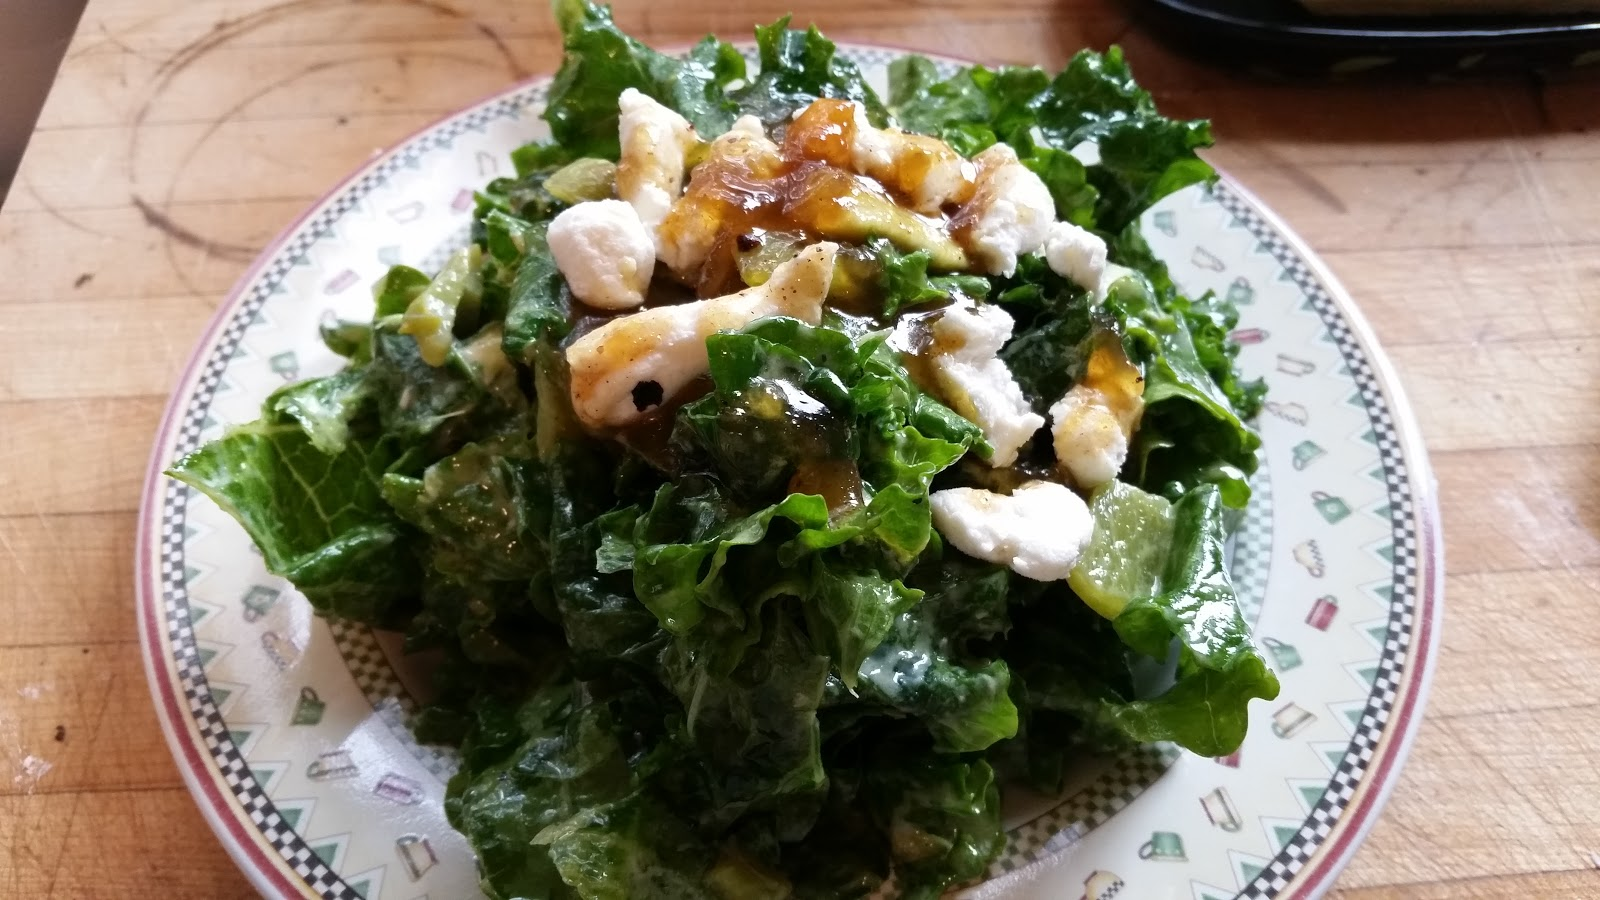 from an Autistic Chef: Massaged kale salad with goat cheese avocado ...